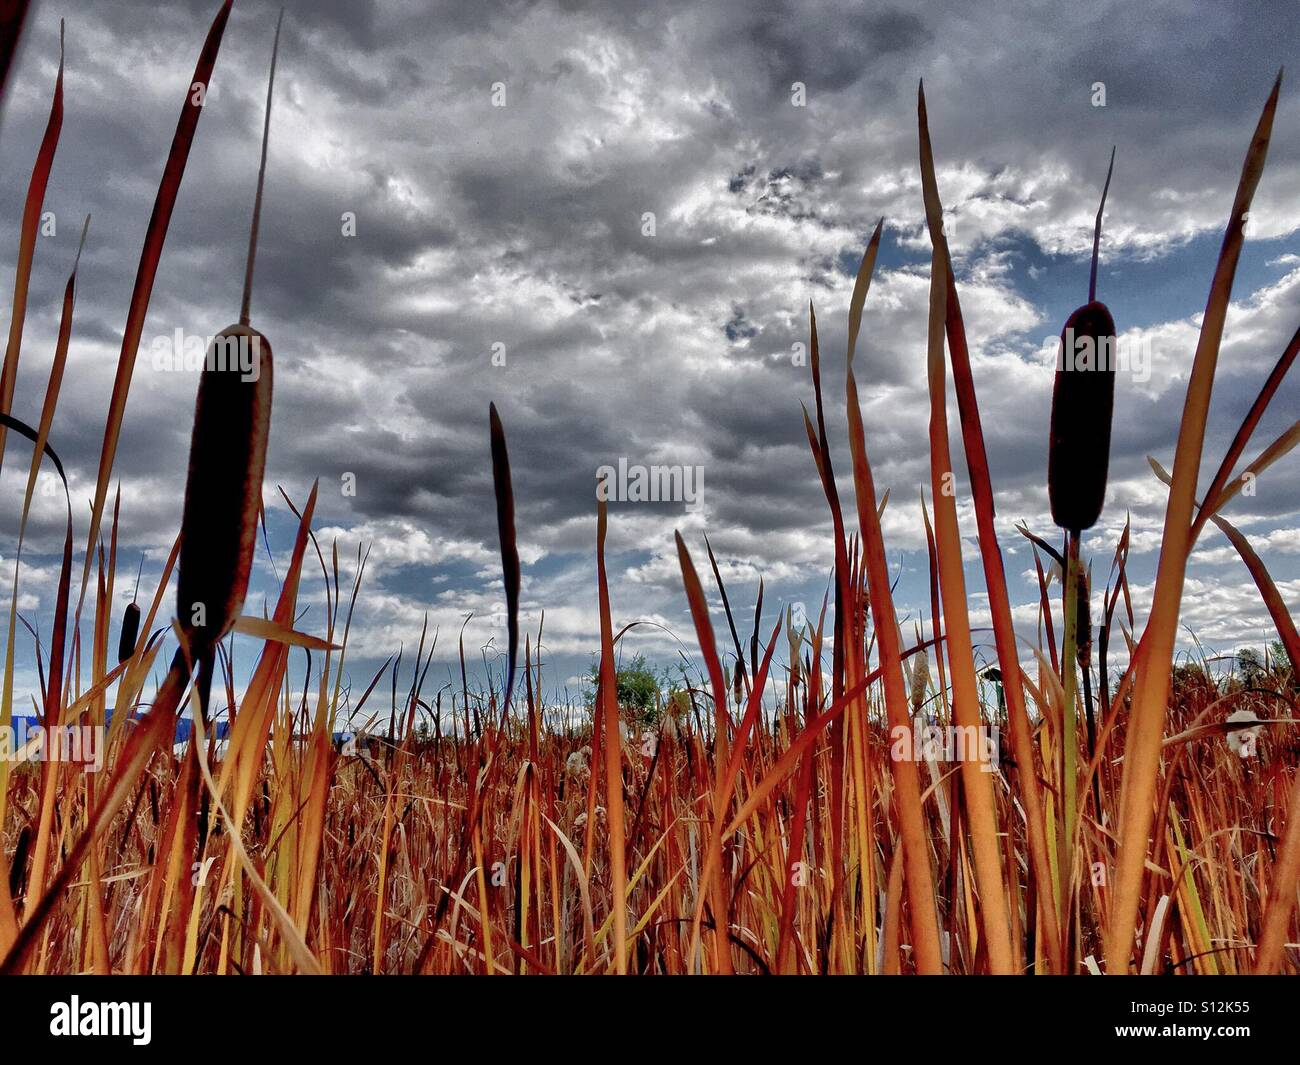 Cattails are seen against a beautiful cloudy blue sky background. - Stock Image